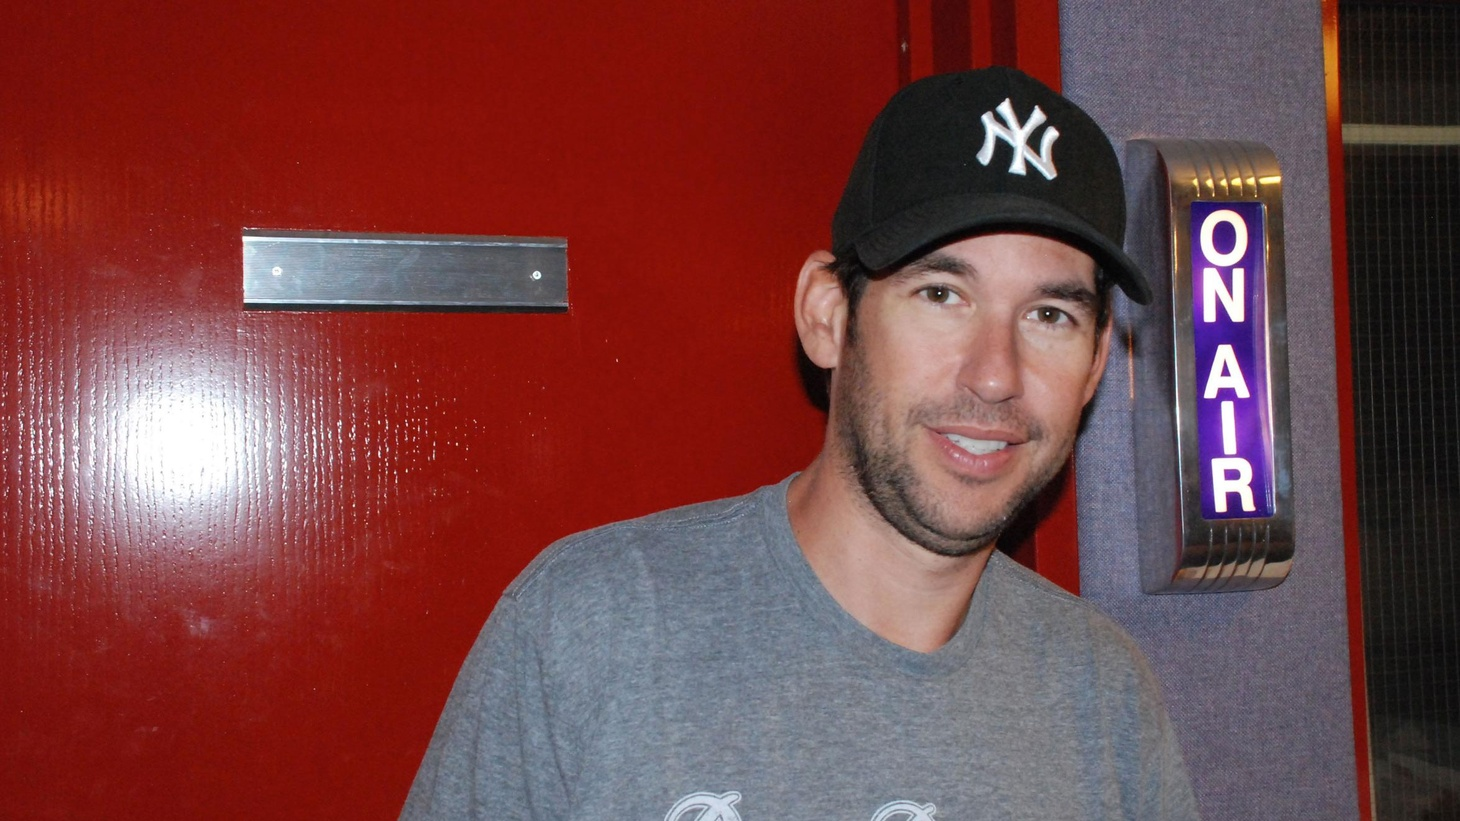 Elvis Mitchell talks with Doug Ellin, creator and executive producer of Entourage, which is currently in its eighth season on HBO.